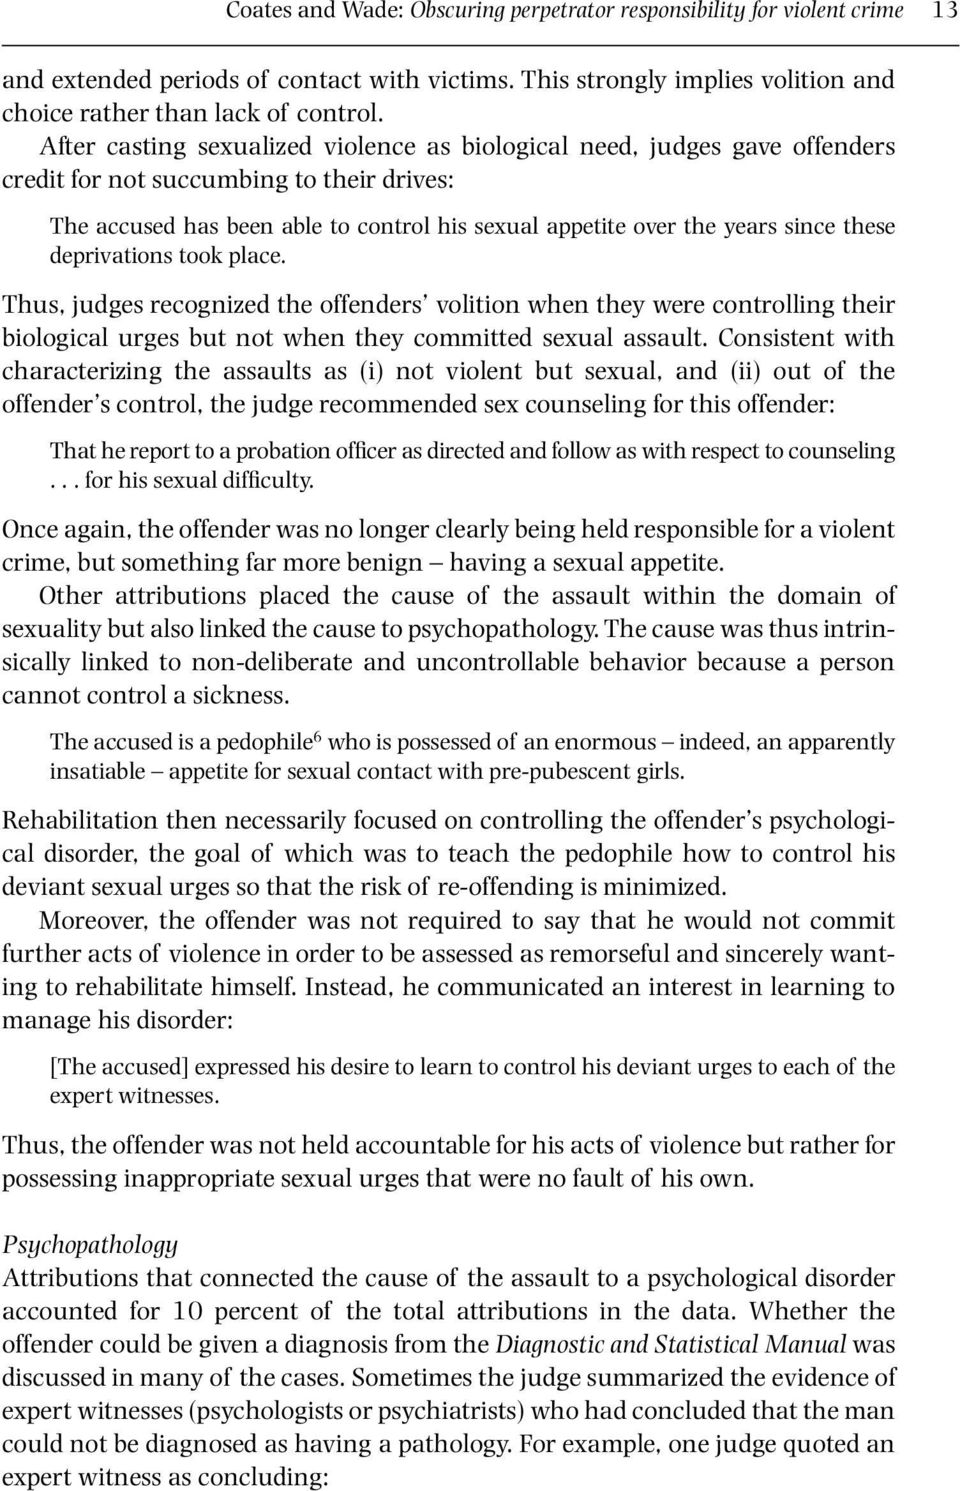 these deprivations took place. Thus, judges recognized the offenders volition when they were controlling their biological urges but not when they committed sexual assault.